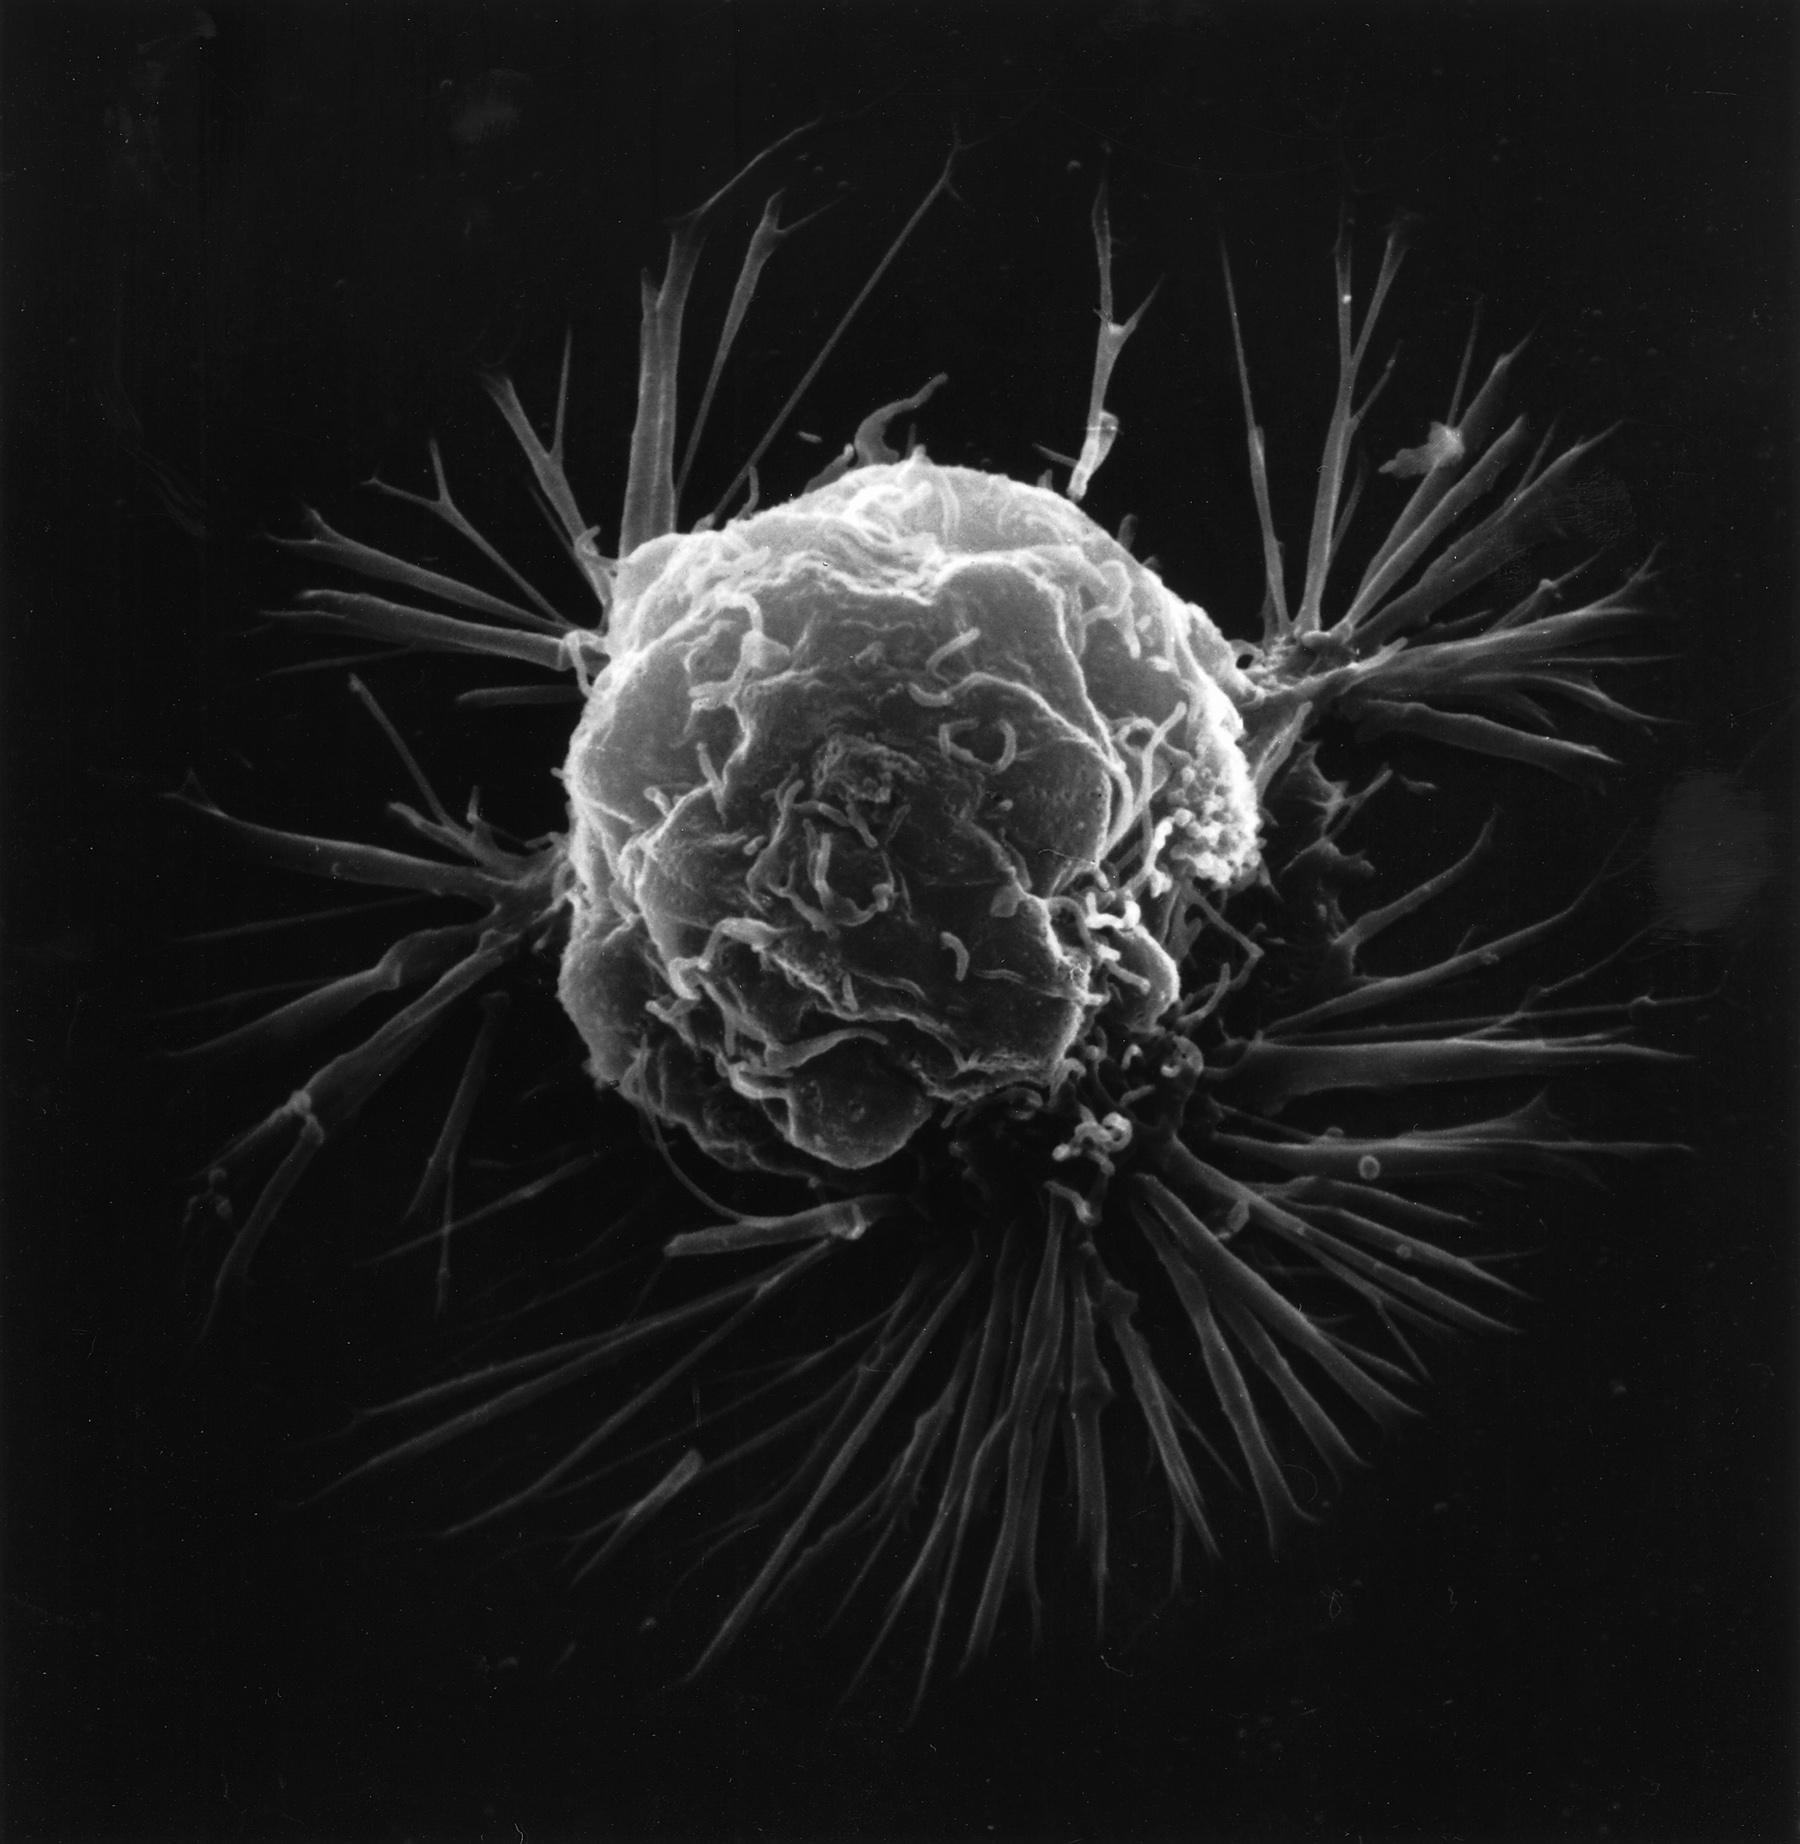 image of a breast cancer cell